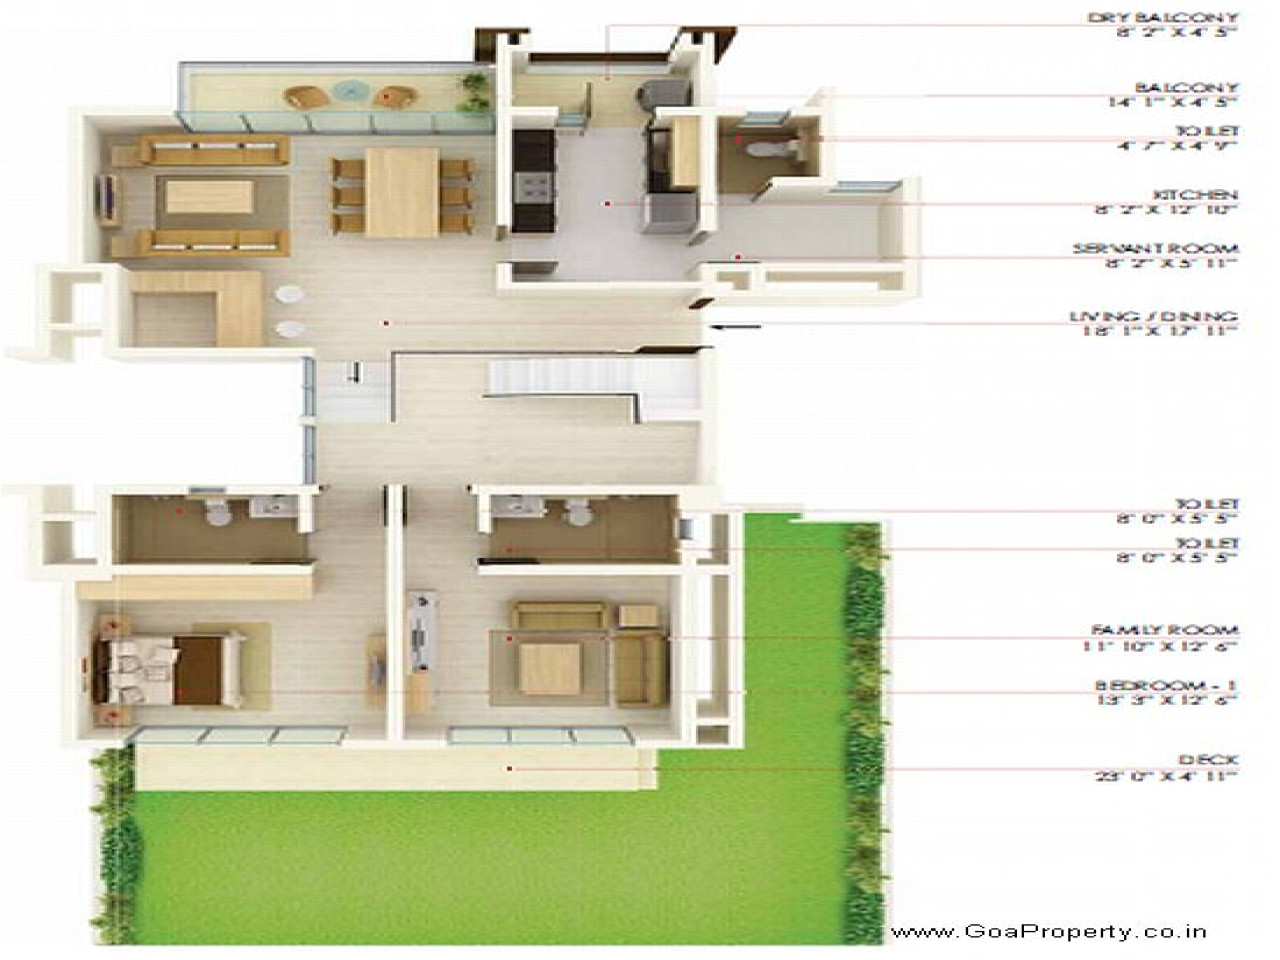 04c44a7bbf81f828 best high end amplifiers high end homes floor plans